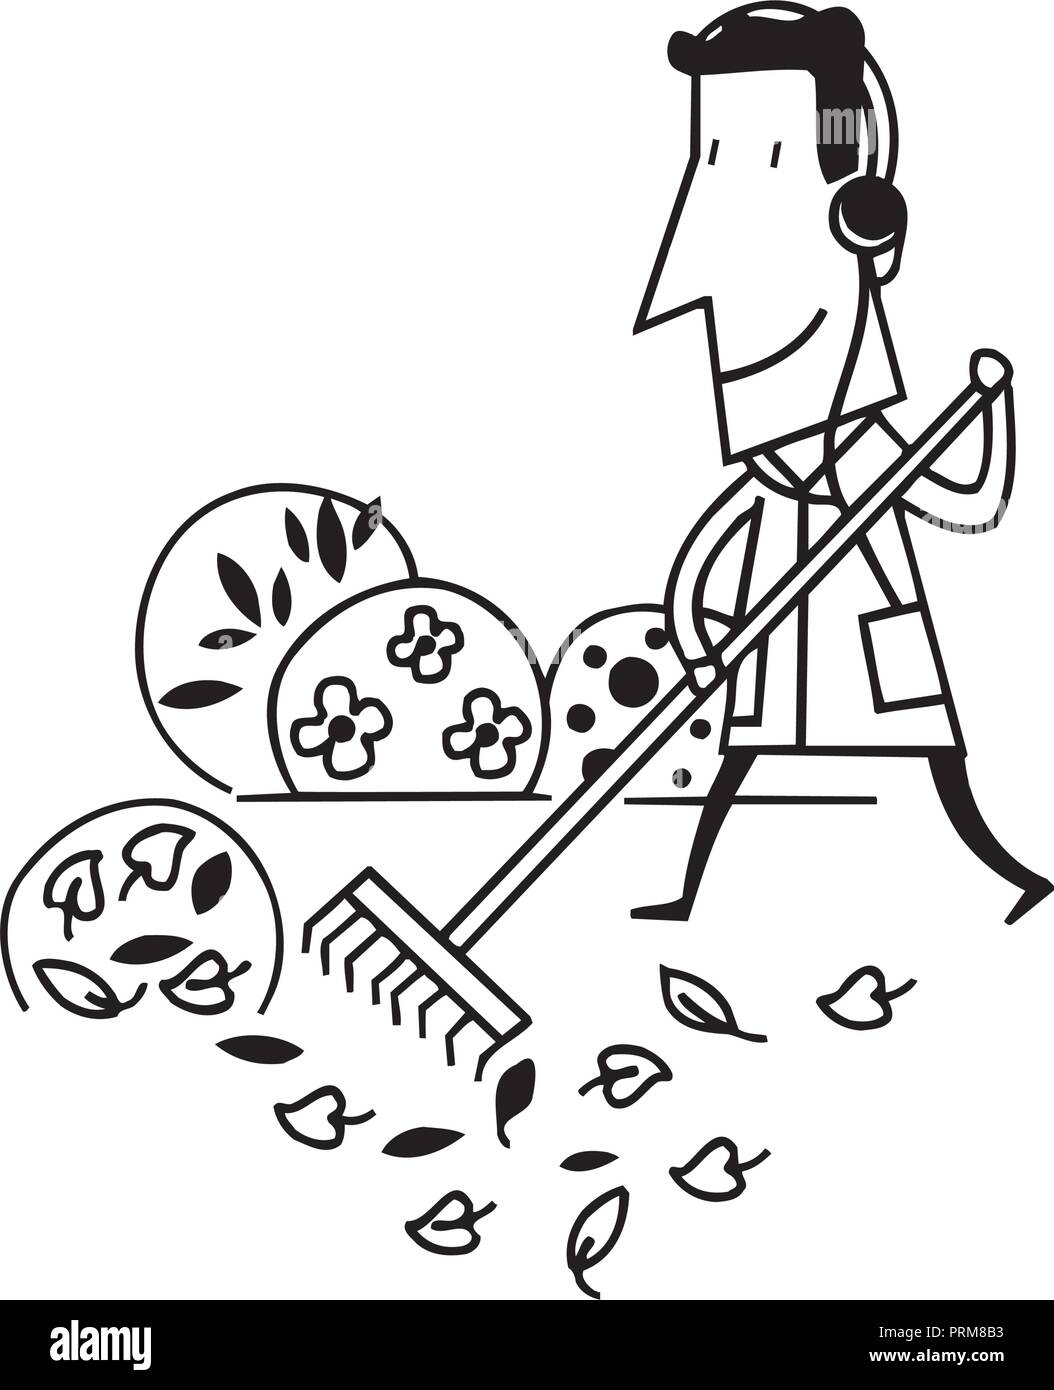 man cleaning garden cartoon illustration - Stock Image